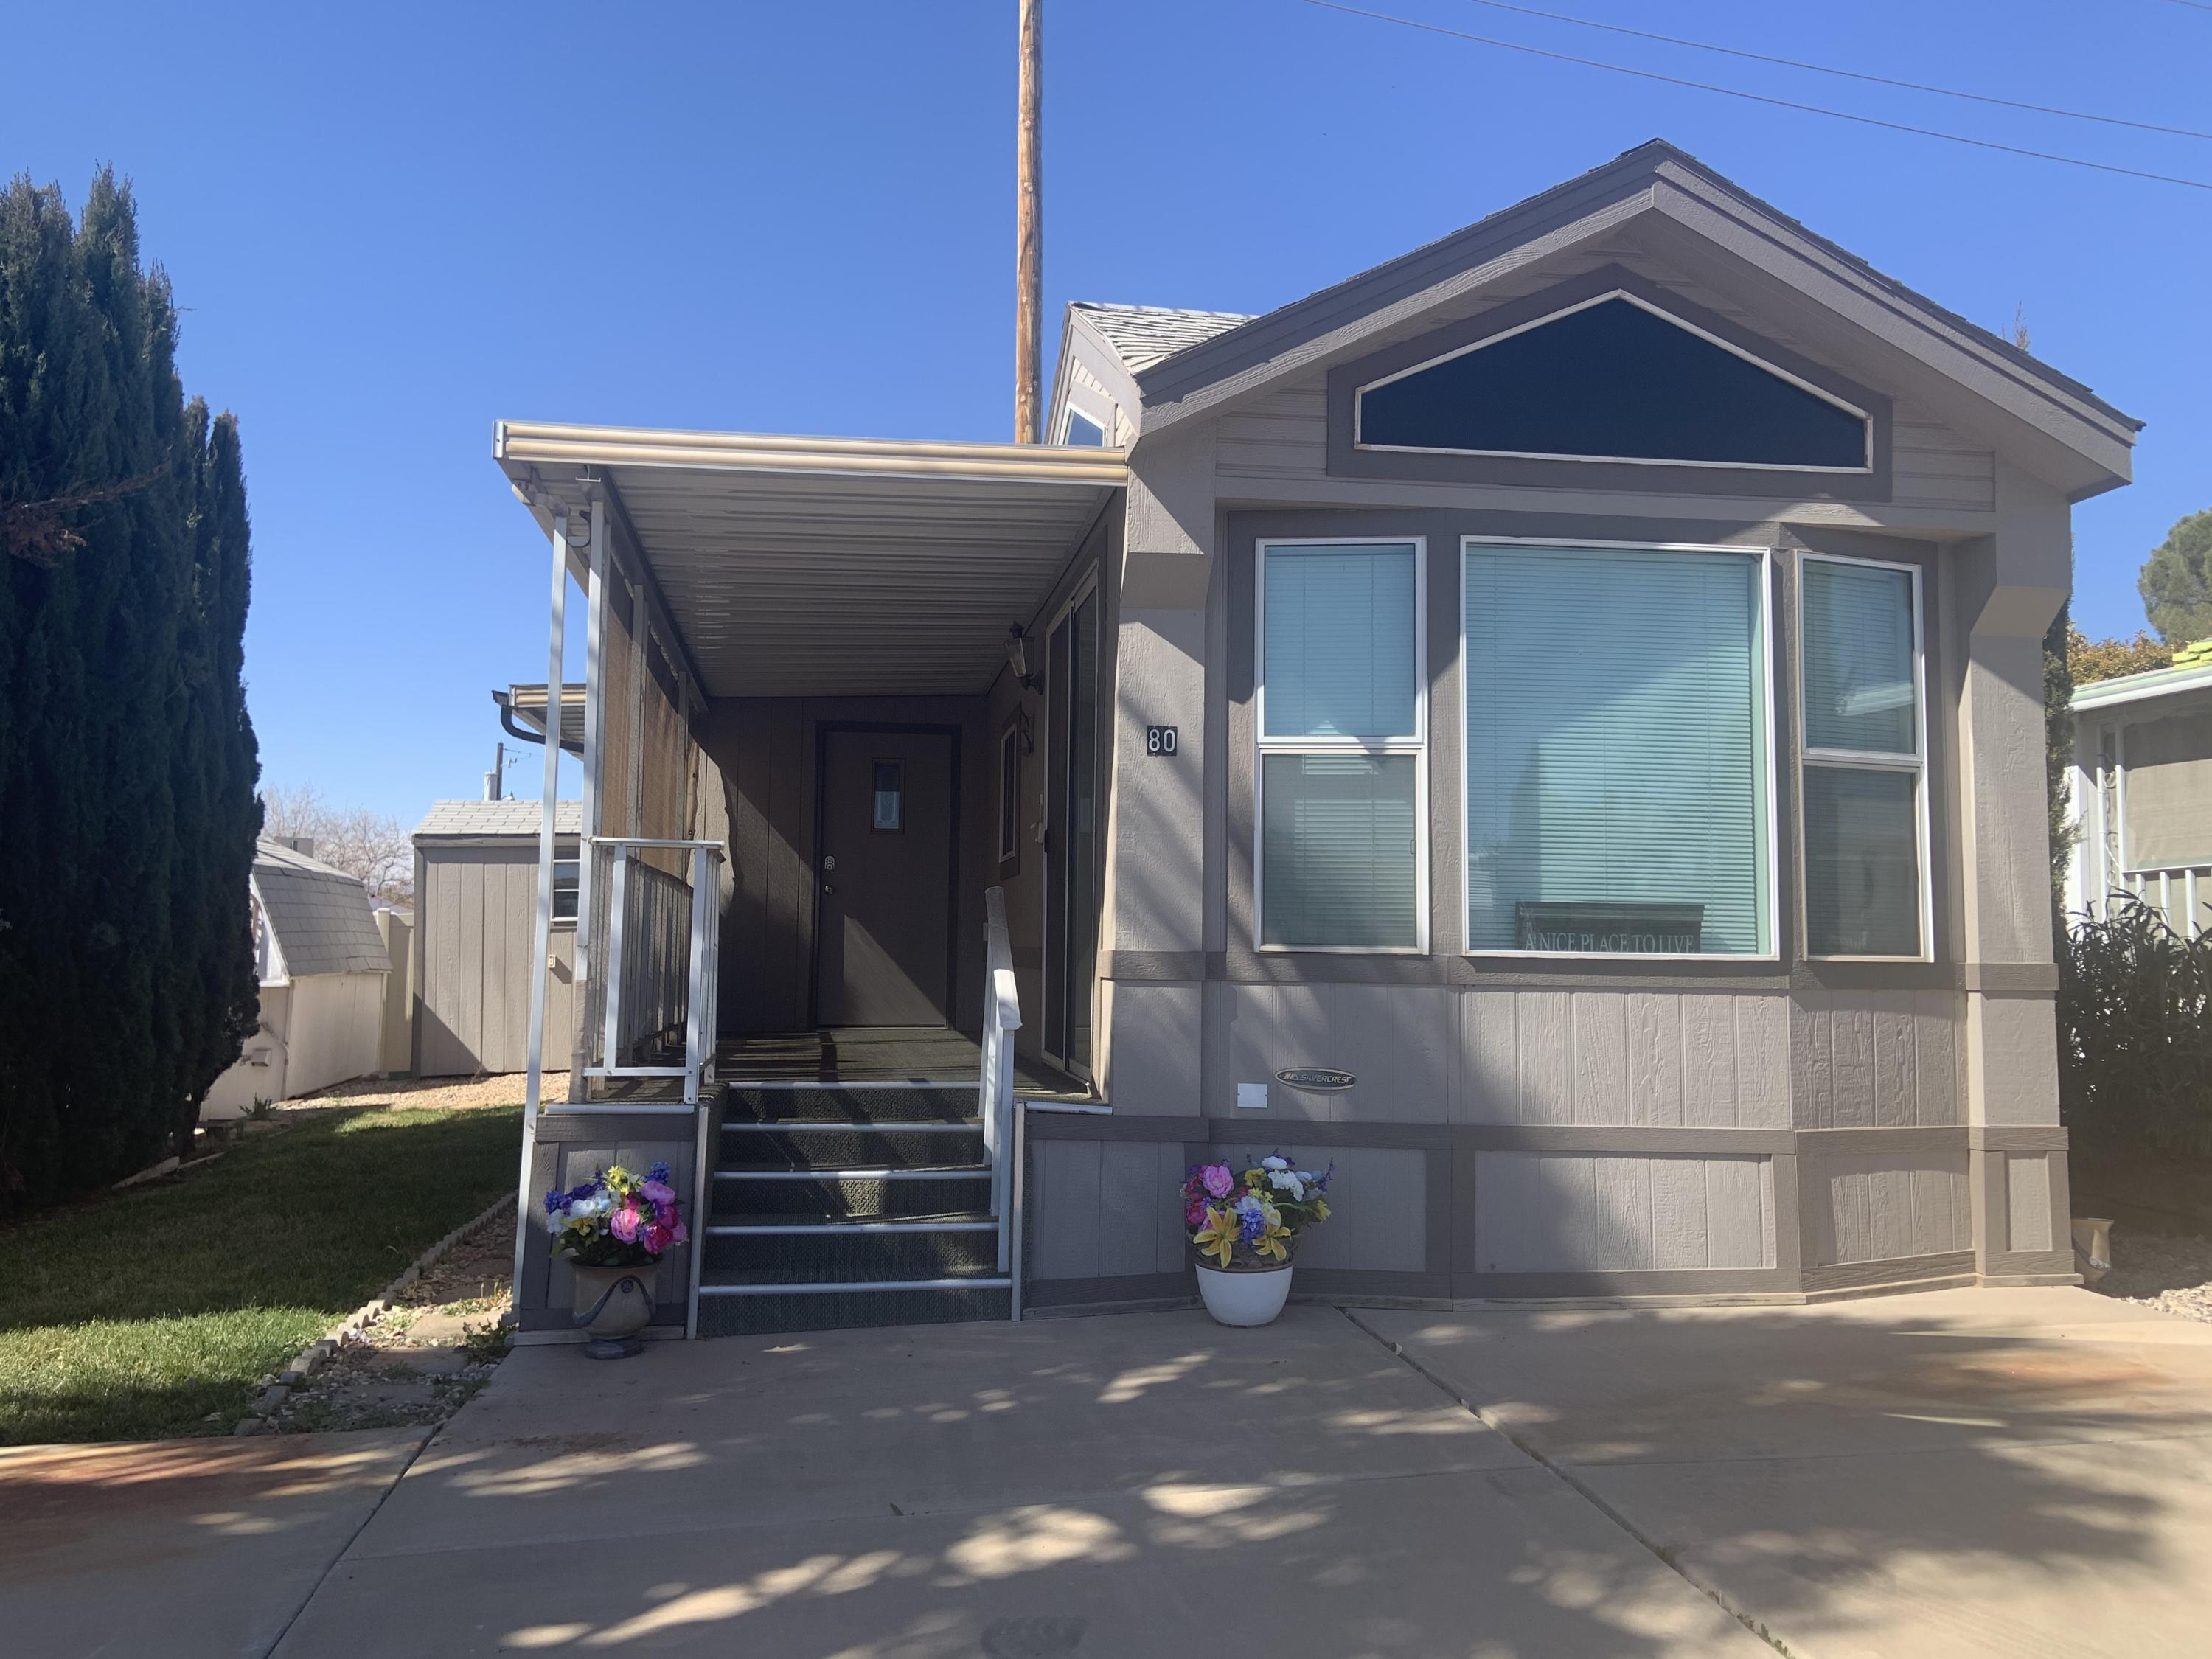 448 E Telegraph St Unit 80, Washington Ut 84780